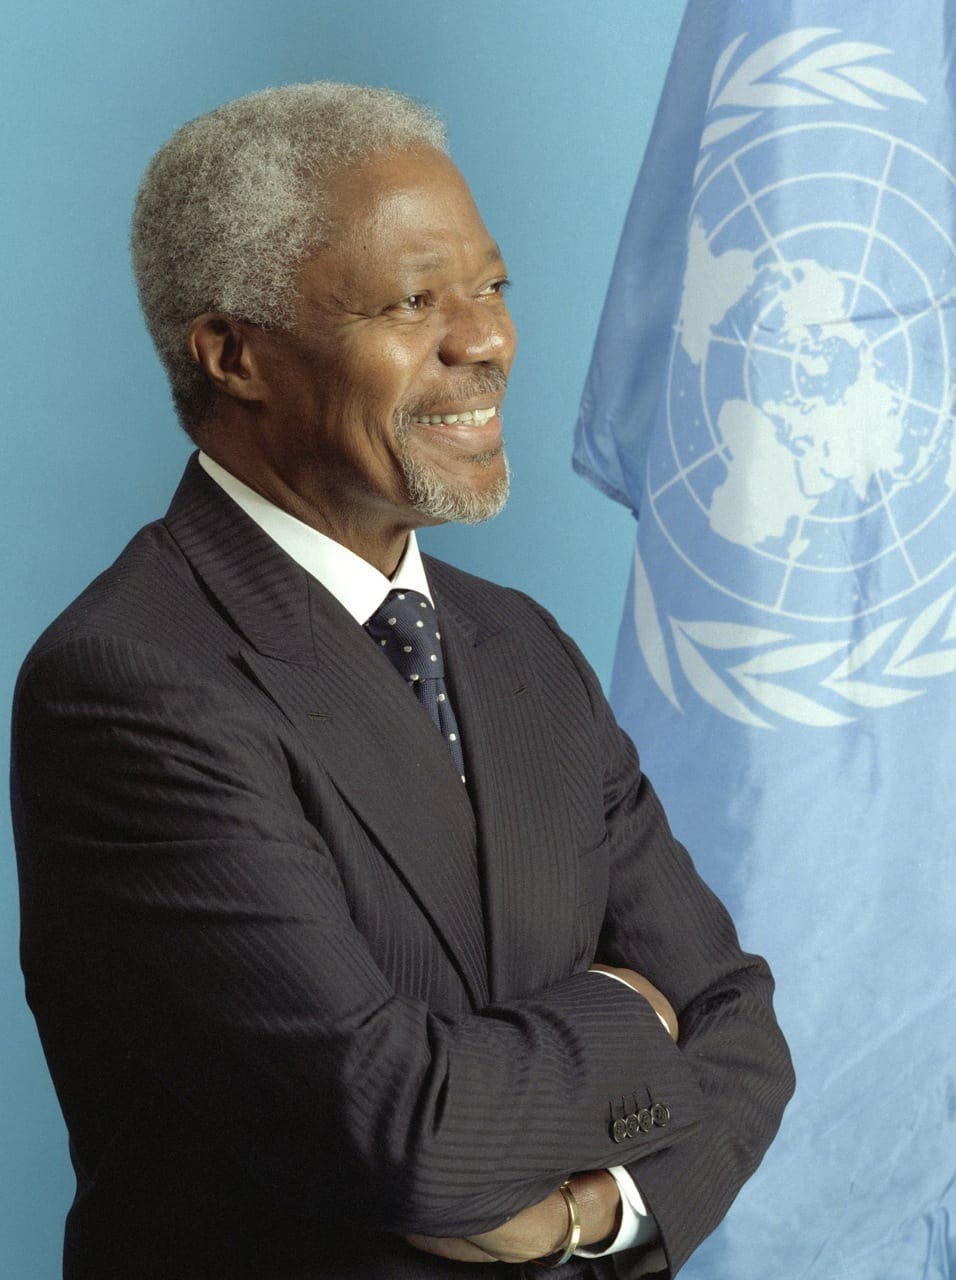 Wining and dining with Kofi Annan in Spain